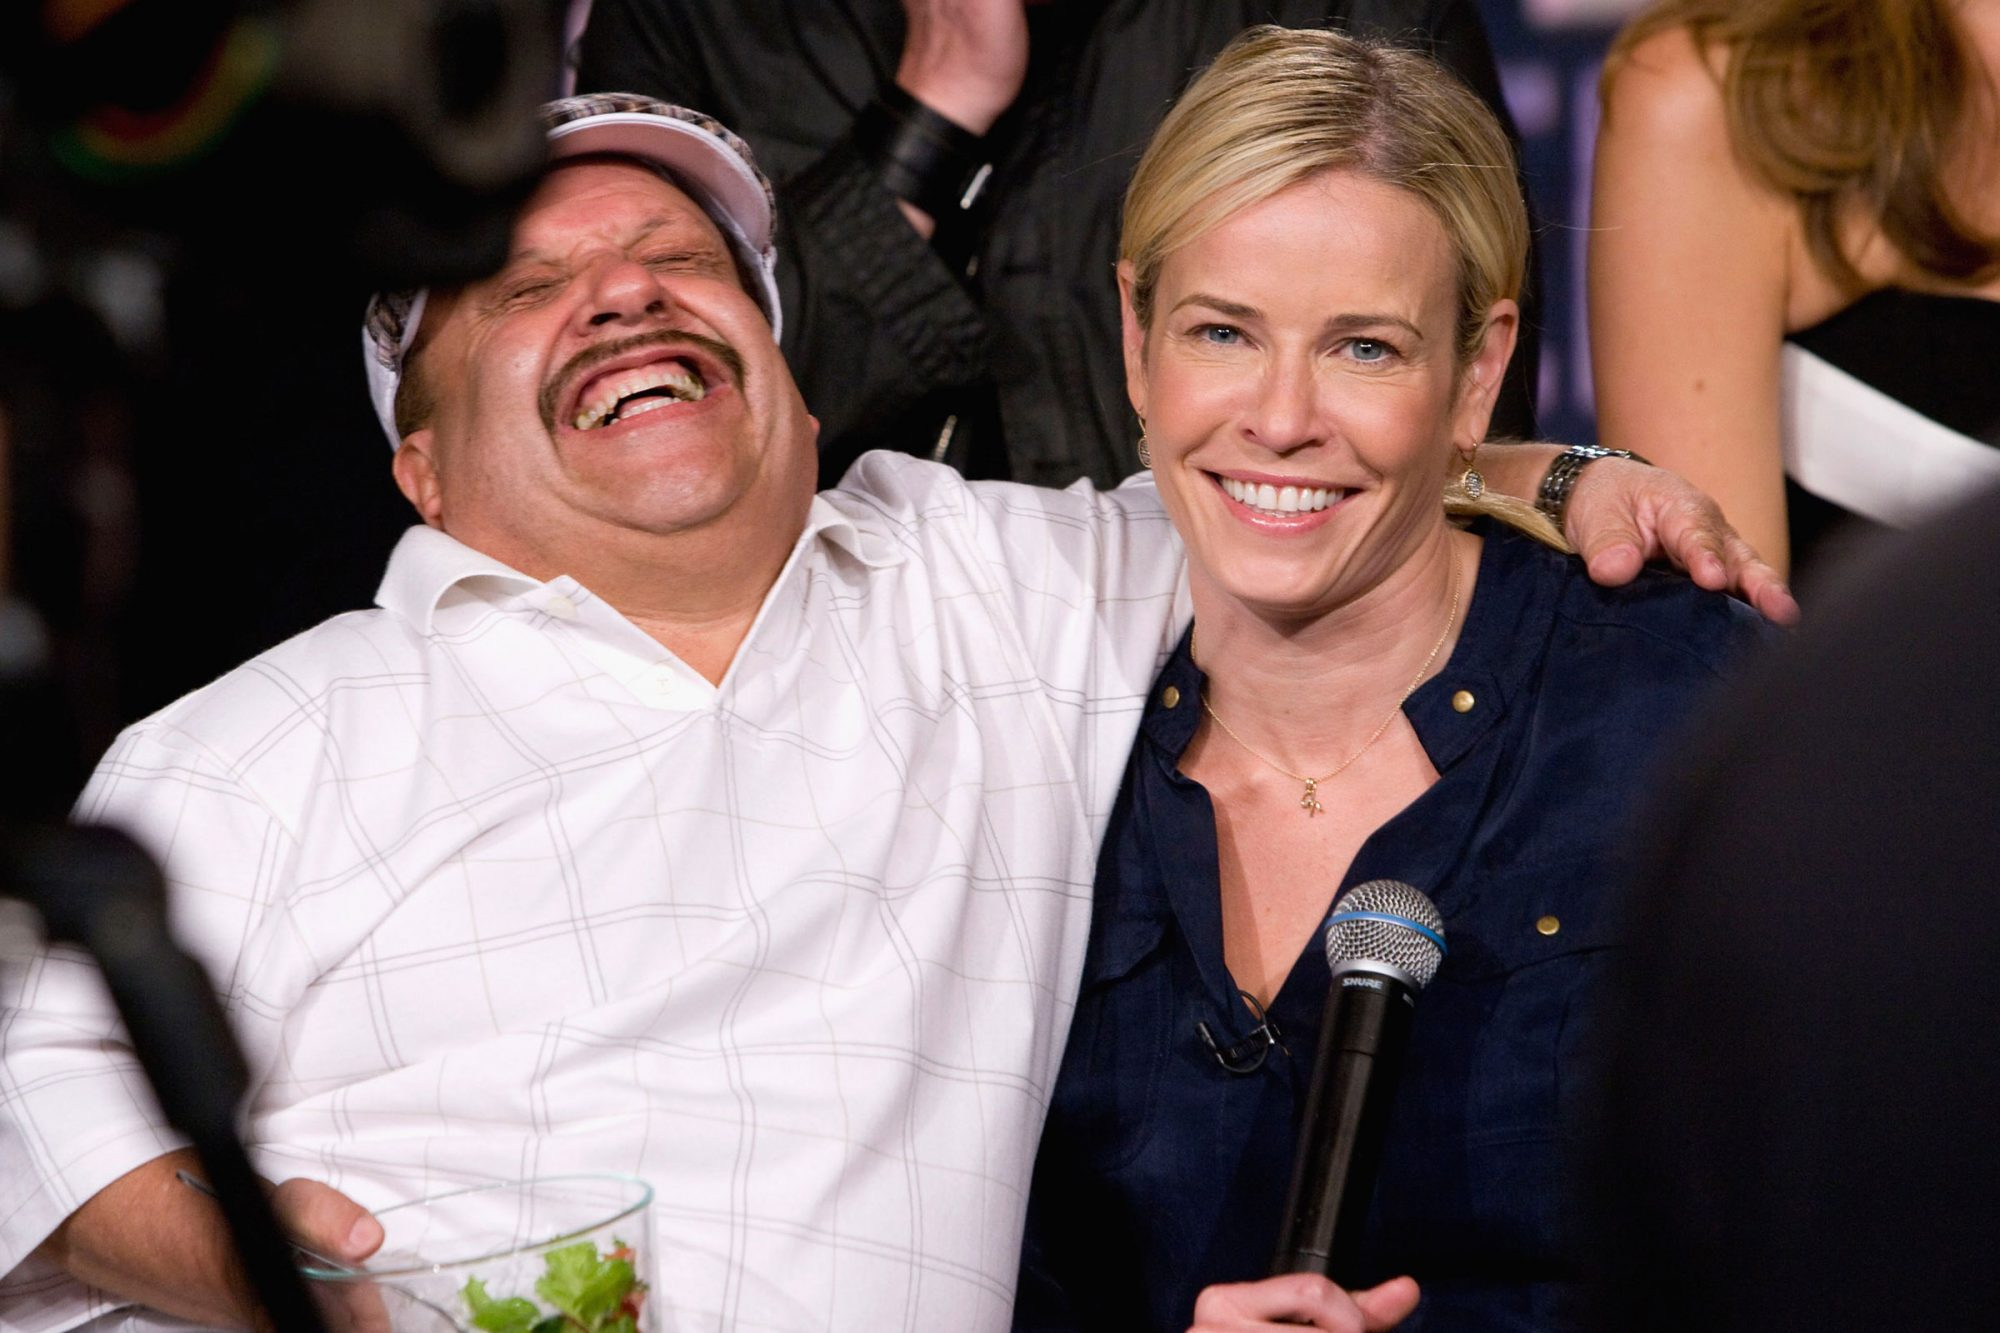 Chelsea Handler and actor Chuy Bravo